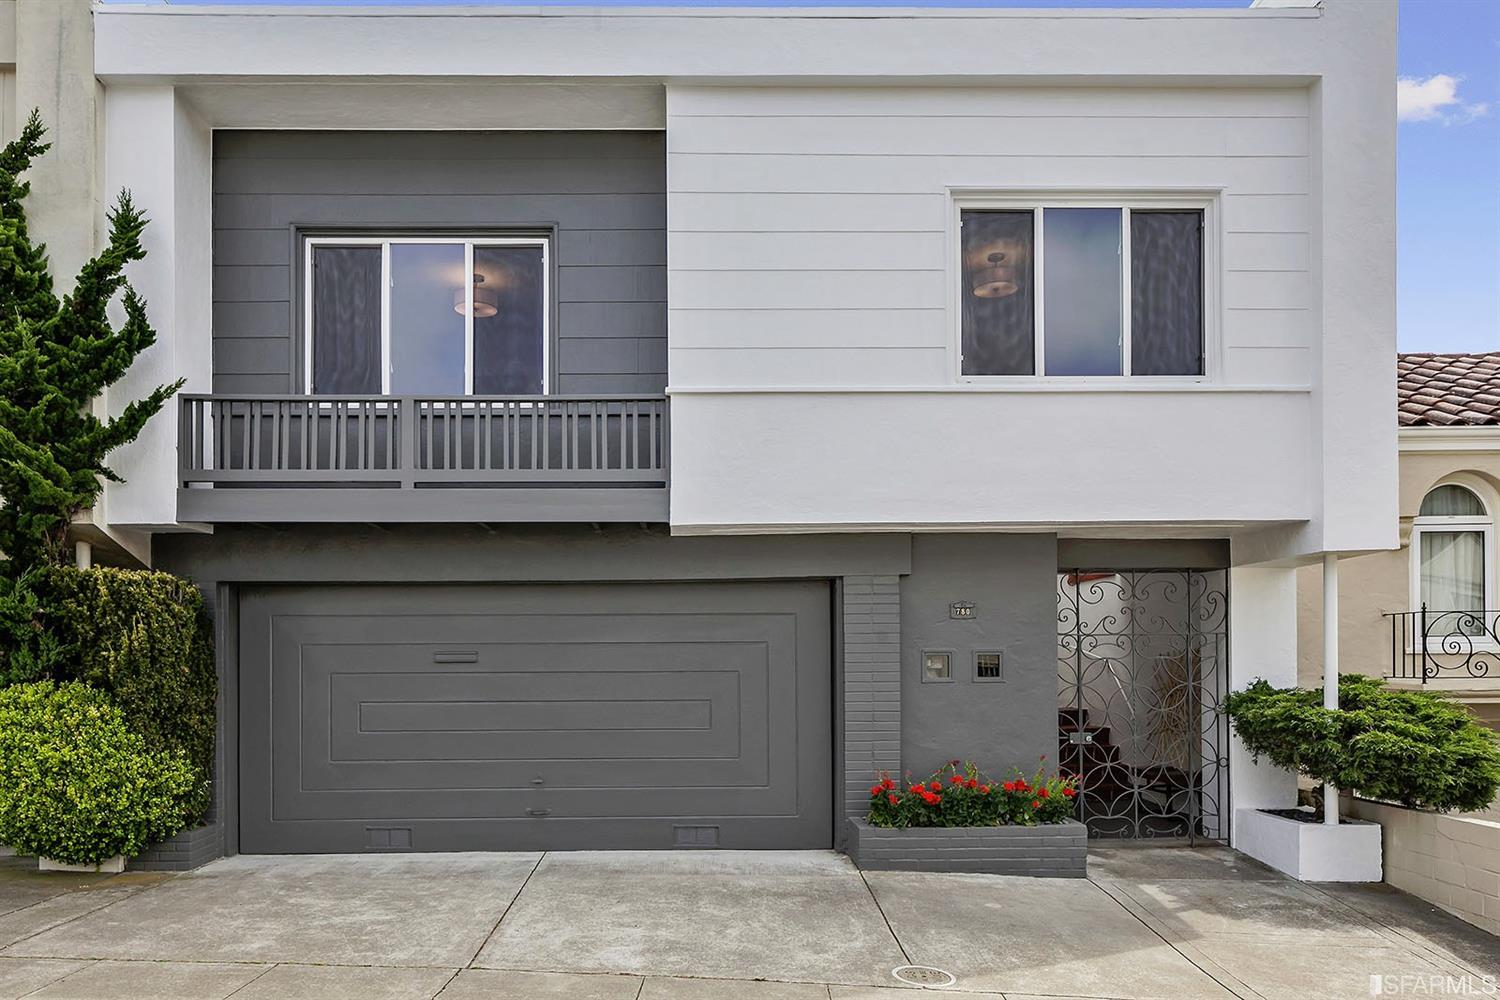 Additional photo for property listing at 780 Pacheco Street  SAN FRANCISCO, CALIFORNIA 94116